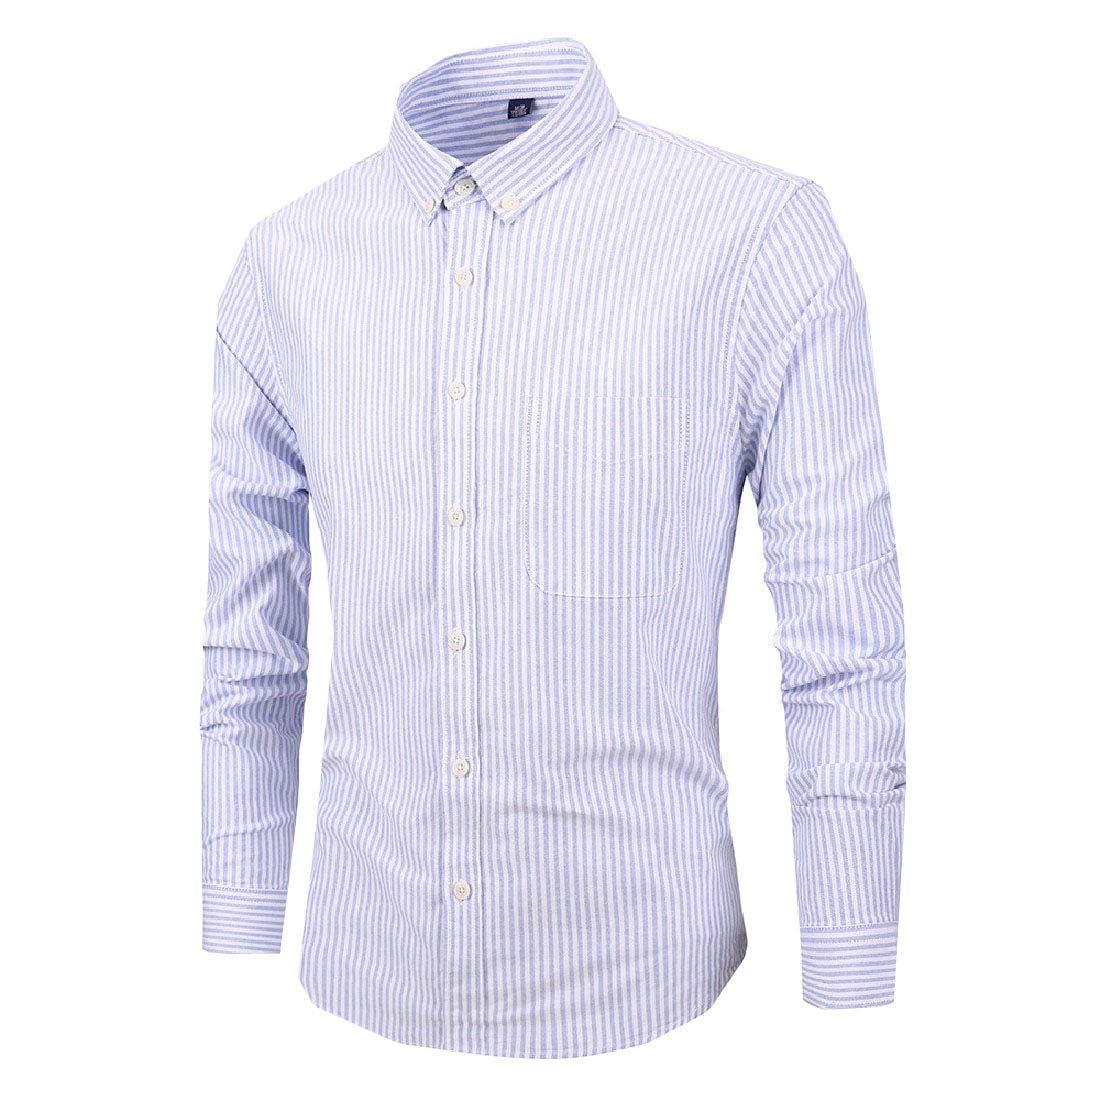 RDHOPE-Men Long Sleeve Striped Fitting Quilted Cotton Shirts